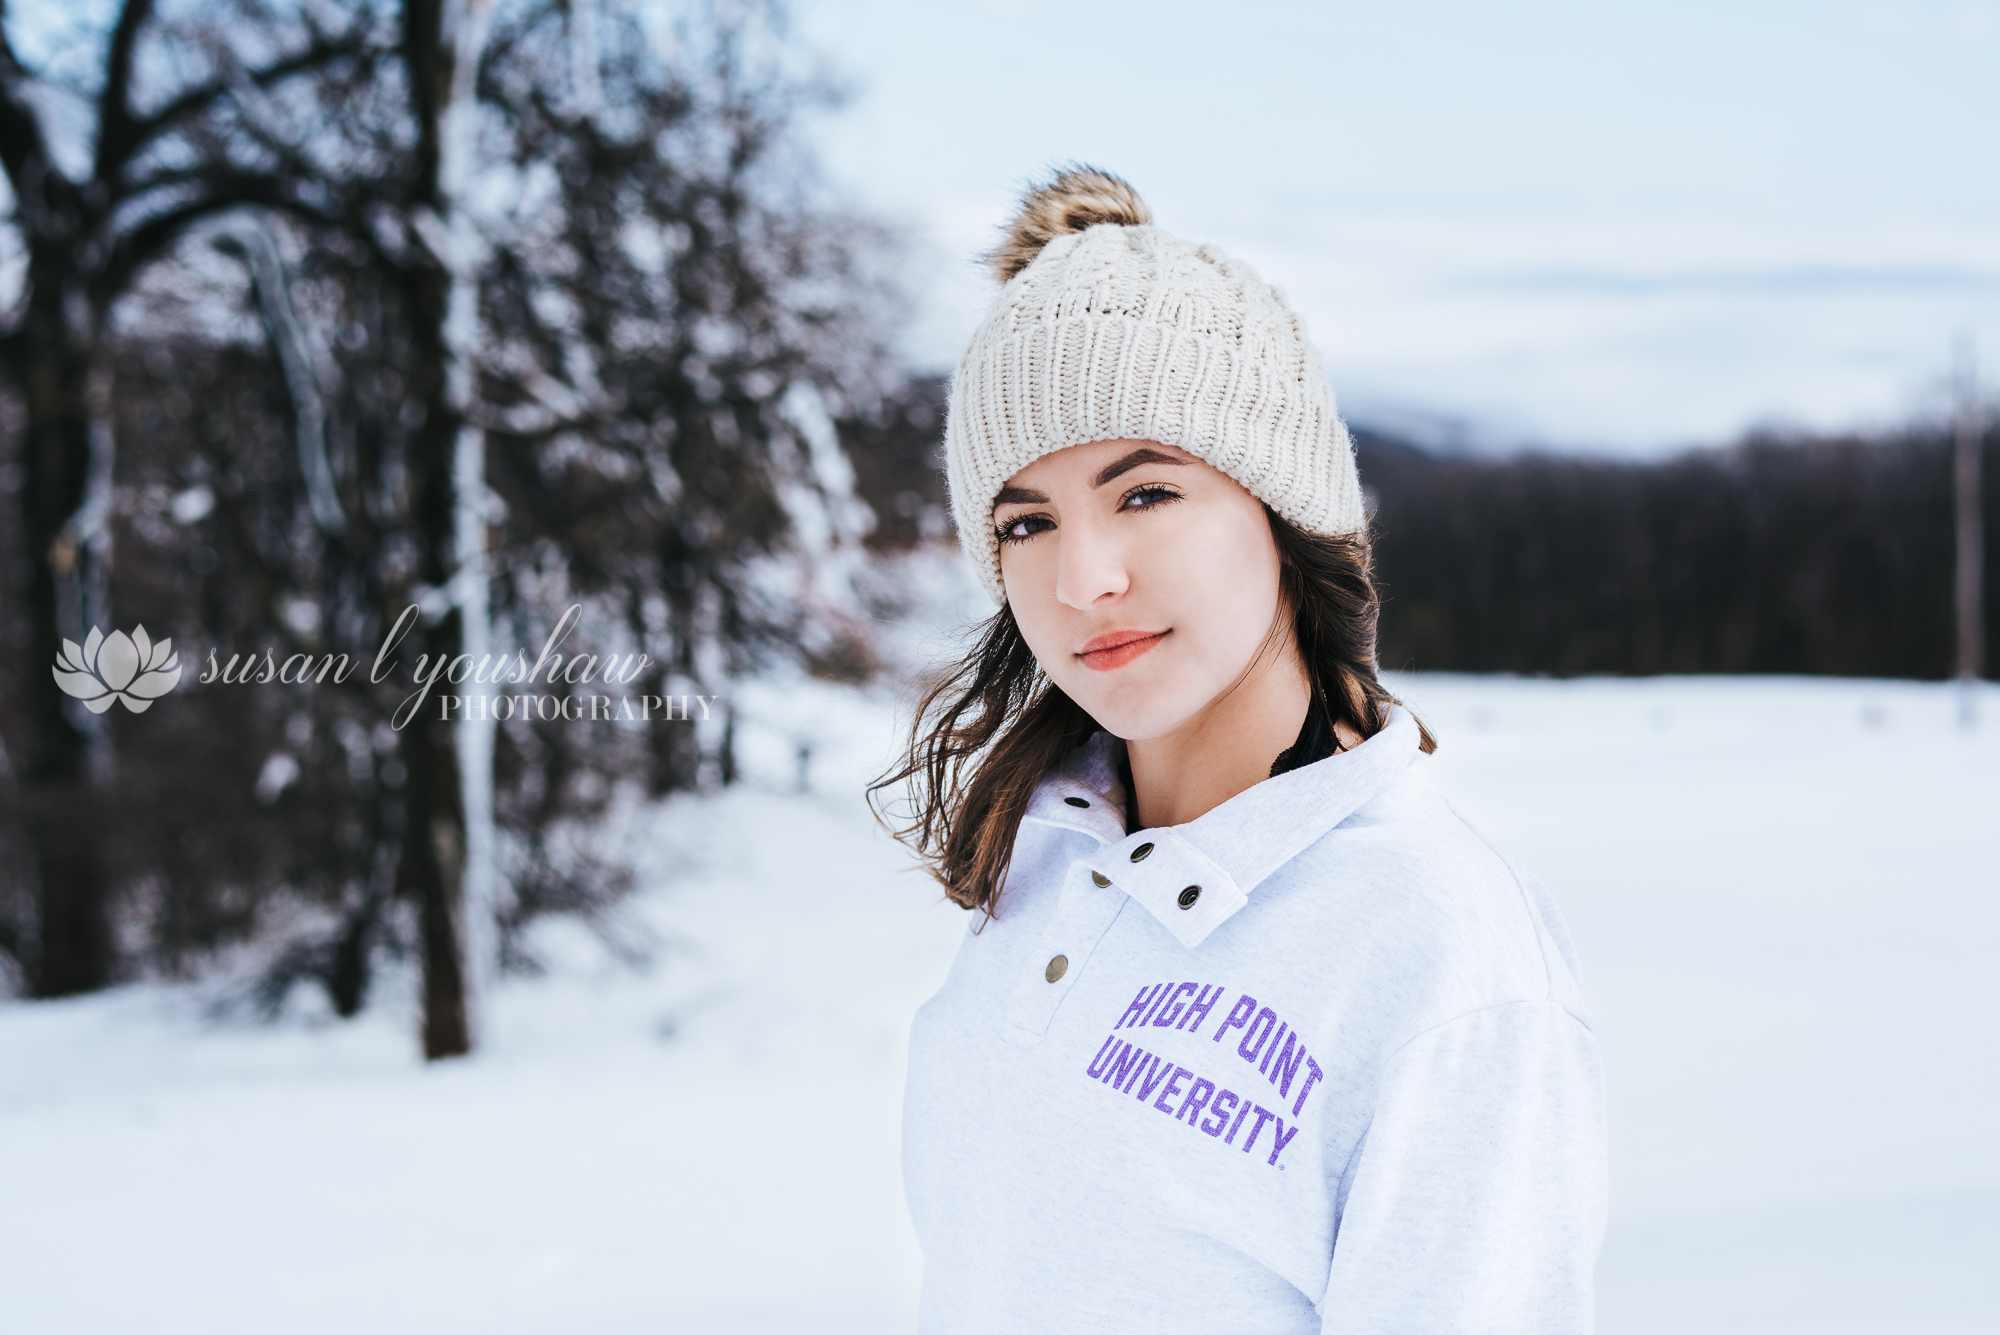 Senior Photos Kenzie 02-24-2019 SLY Photography-11.jpg